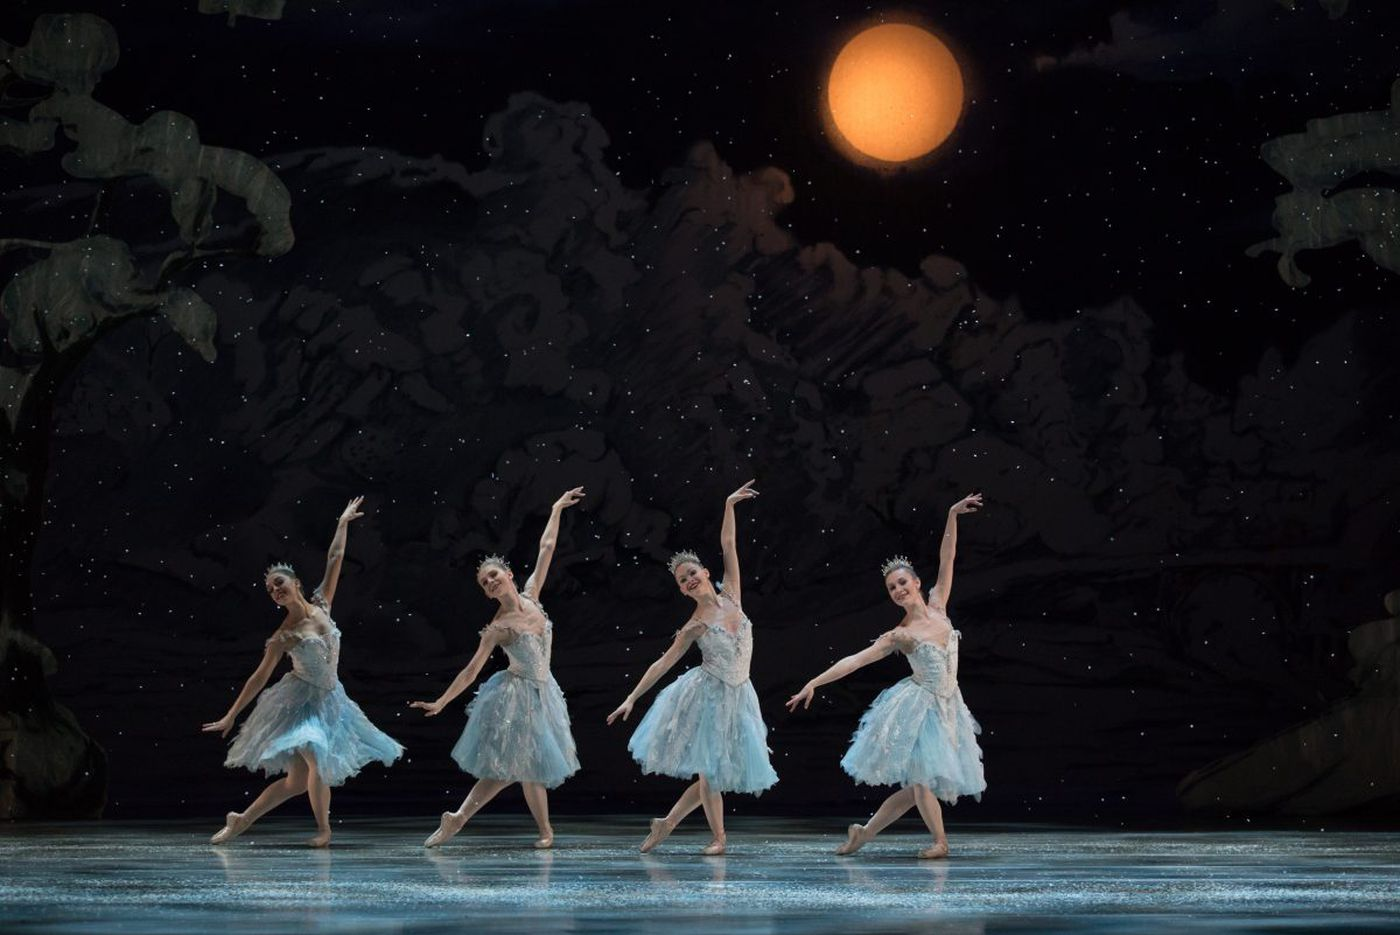 Pa. Ballet's last 'Nutcracker' show of the season has a secret tradition of silly high jinks